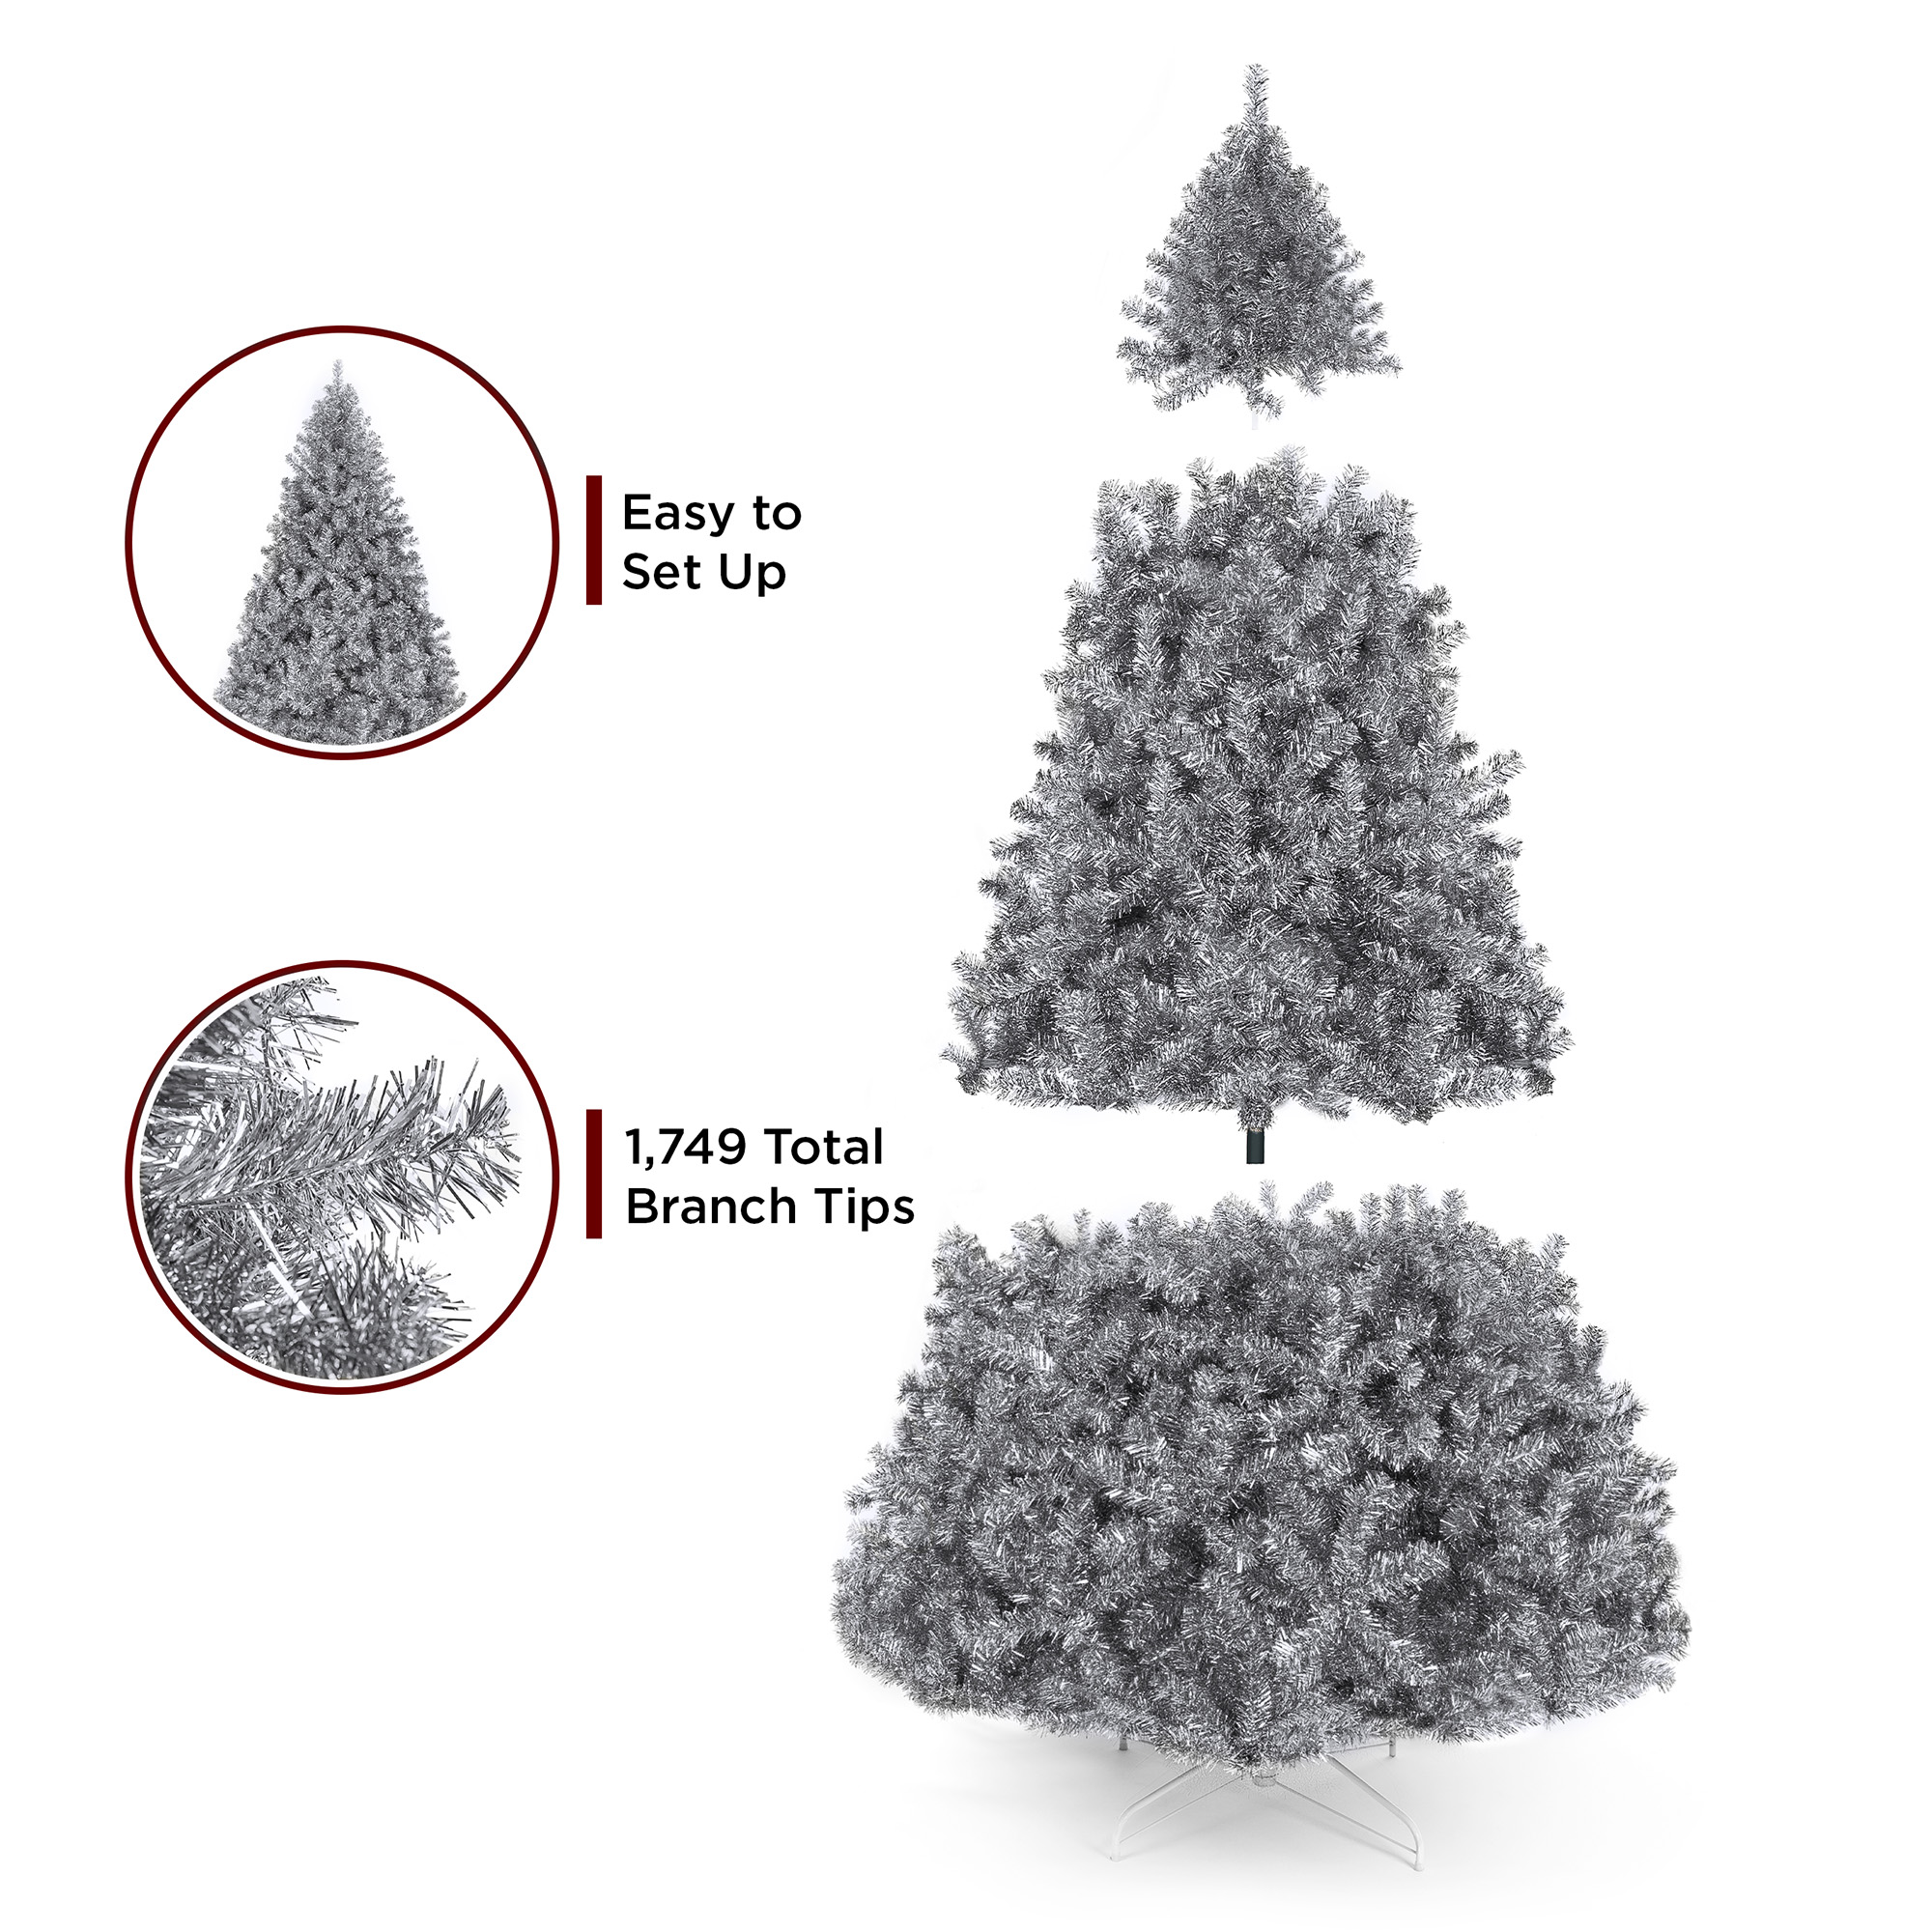 Best Choice Products 7 5ft Artificial Silver Tinsel Christmas Tree Holiday Decoration W 1 749 Branch Tips Stand Walmart Com Walmart Com